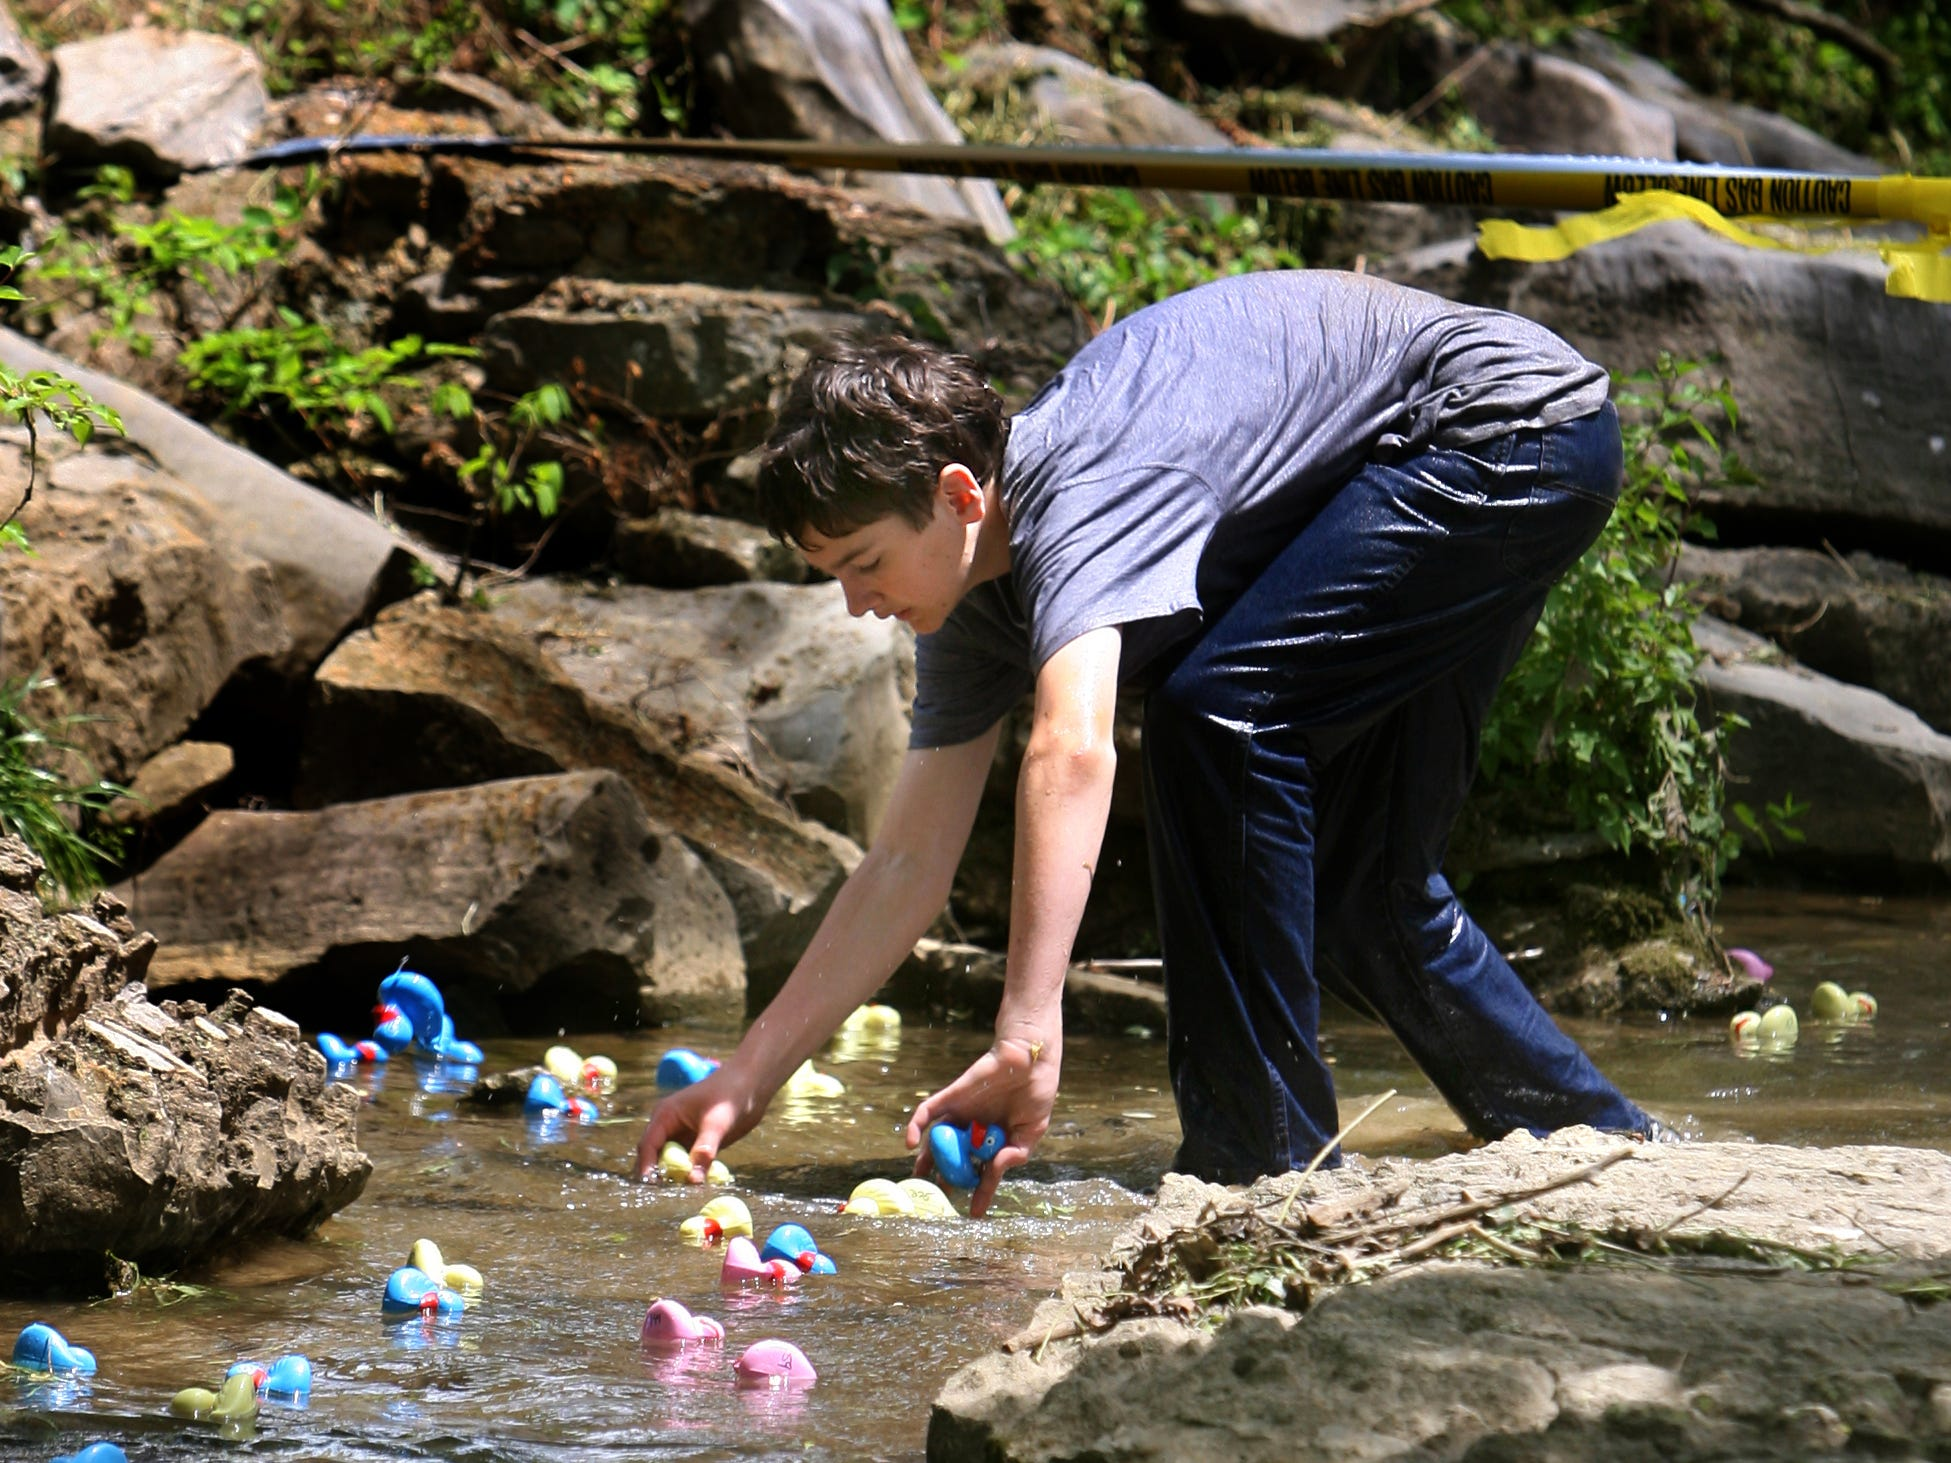 Eighth-grader Sean Conlin keeps the ducks floating down Beech Creek at Currey Ingram Academy on May 7, 2008.